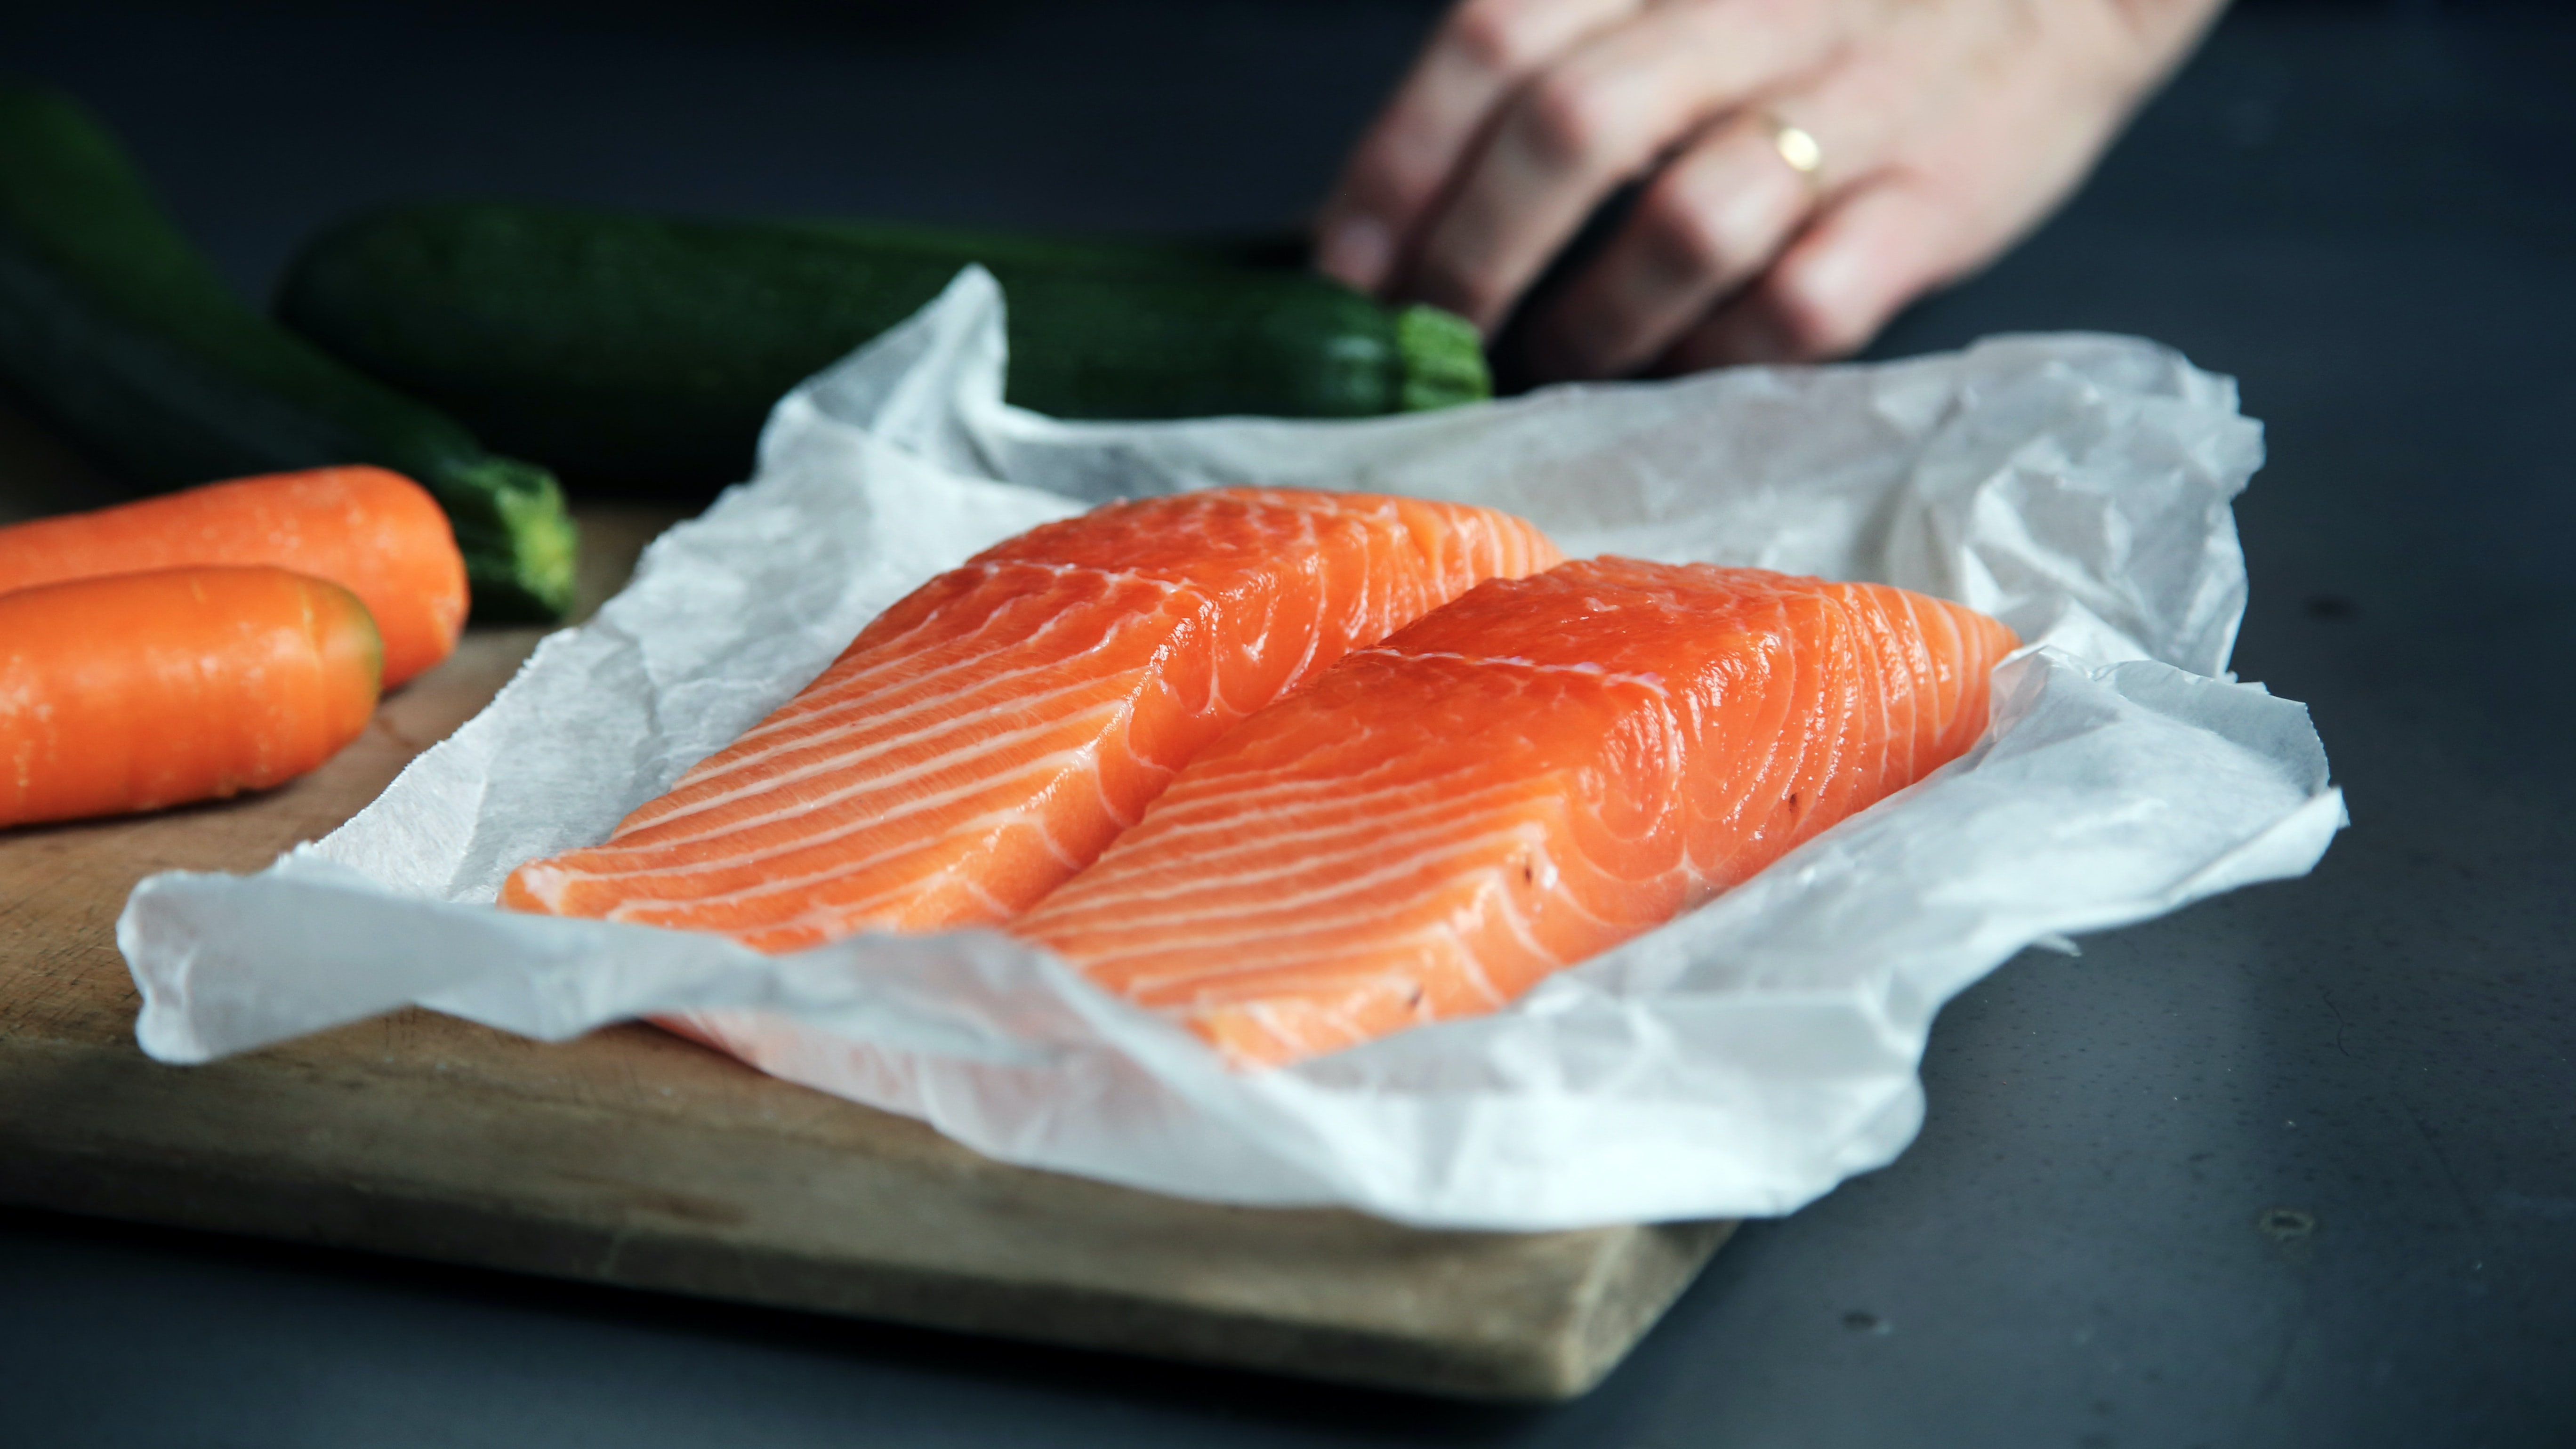 salmon is one of the healthiest high protein foods